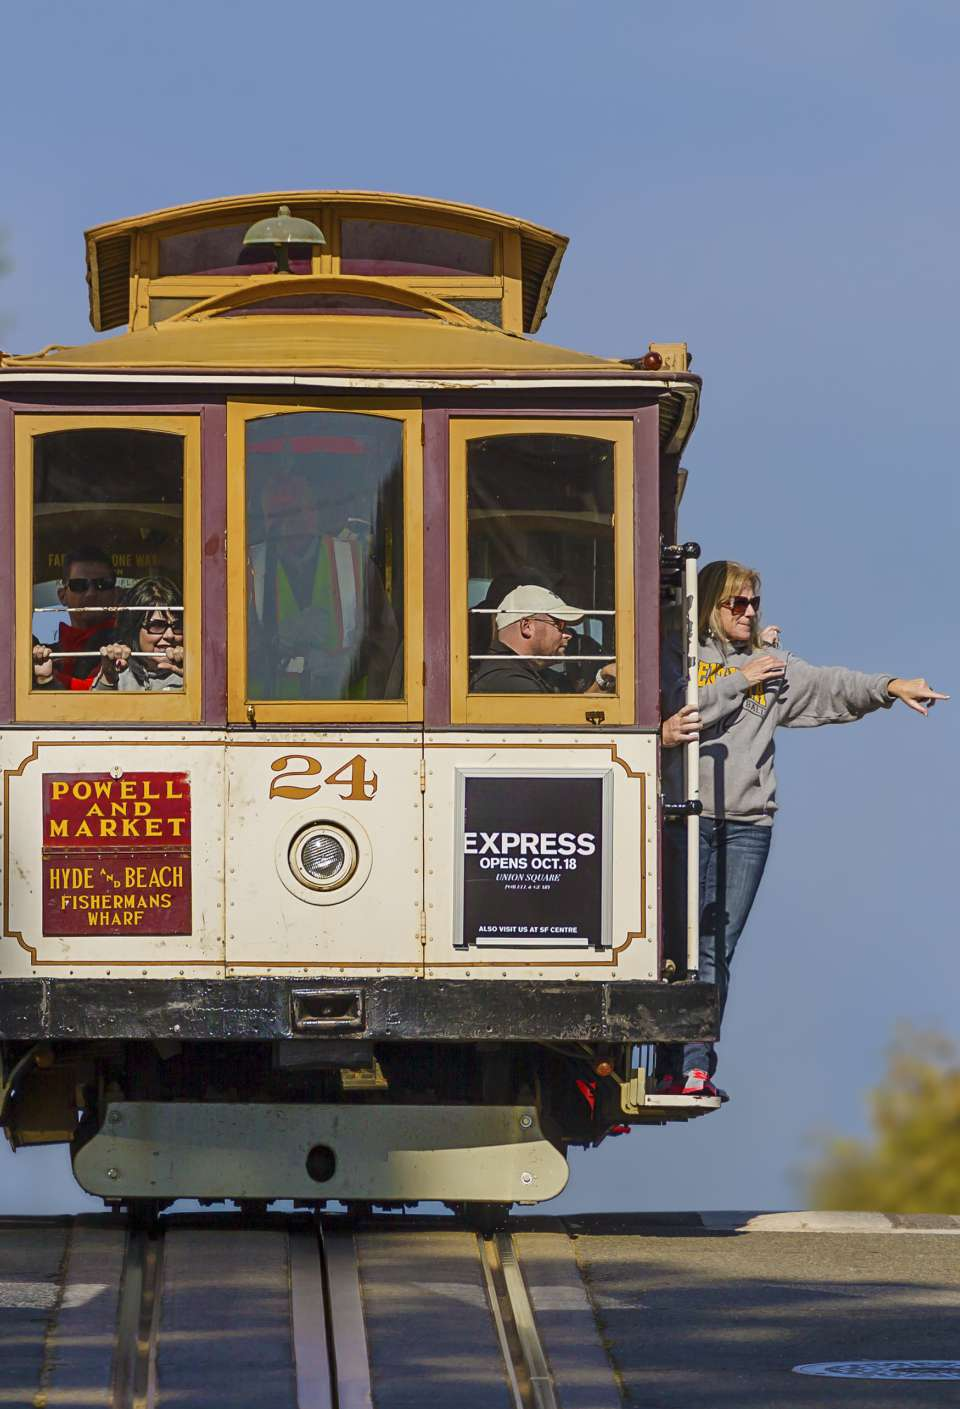 Riders on a San Francisco Cable Car